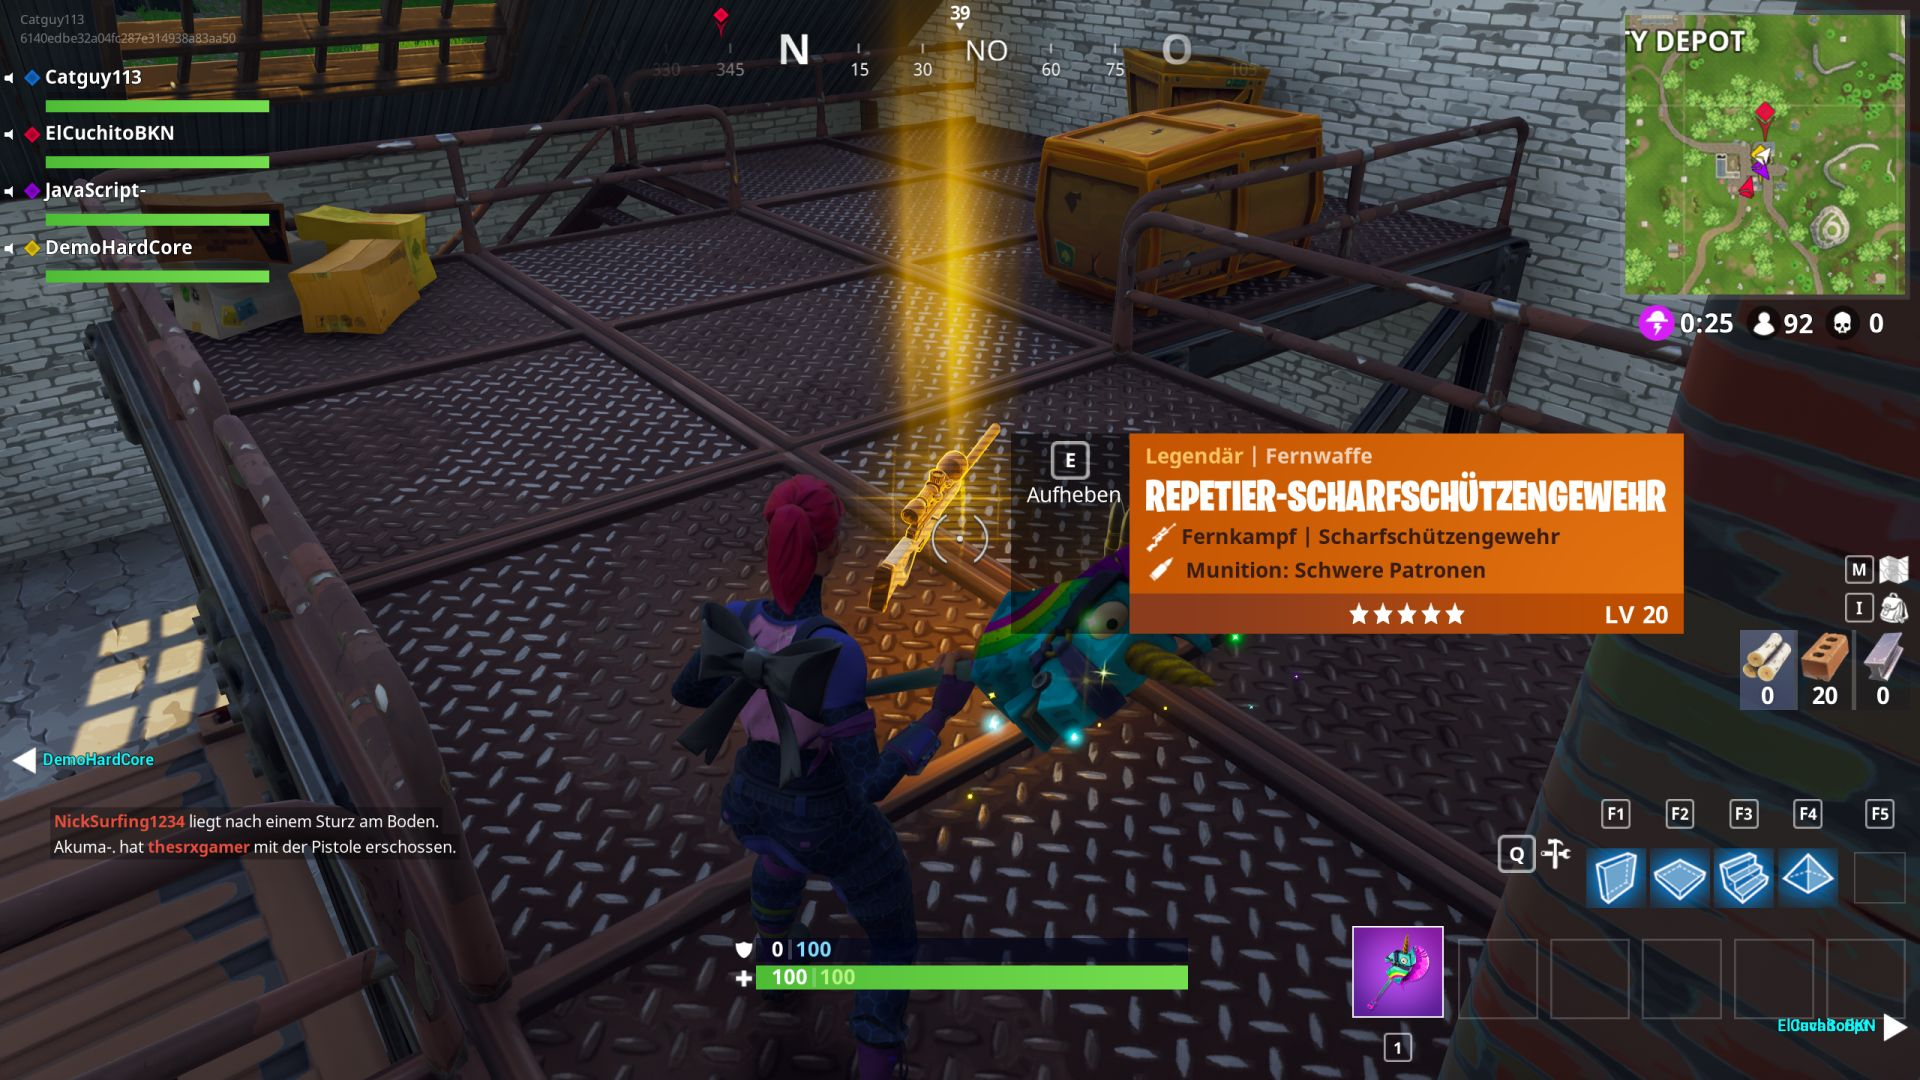 So Geht Crossplay In Fortnite PS PC Xbox One Switch Handy - Minecraft pc und handy zusammen spielen